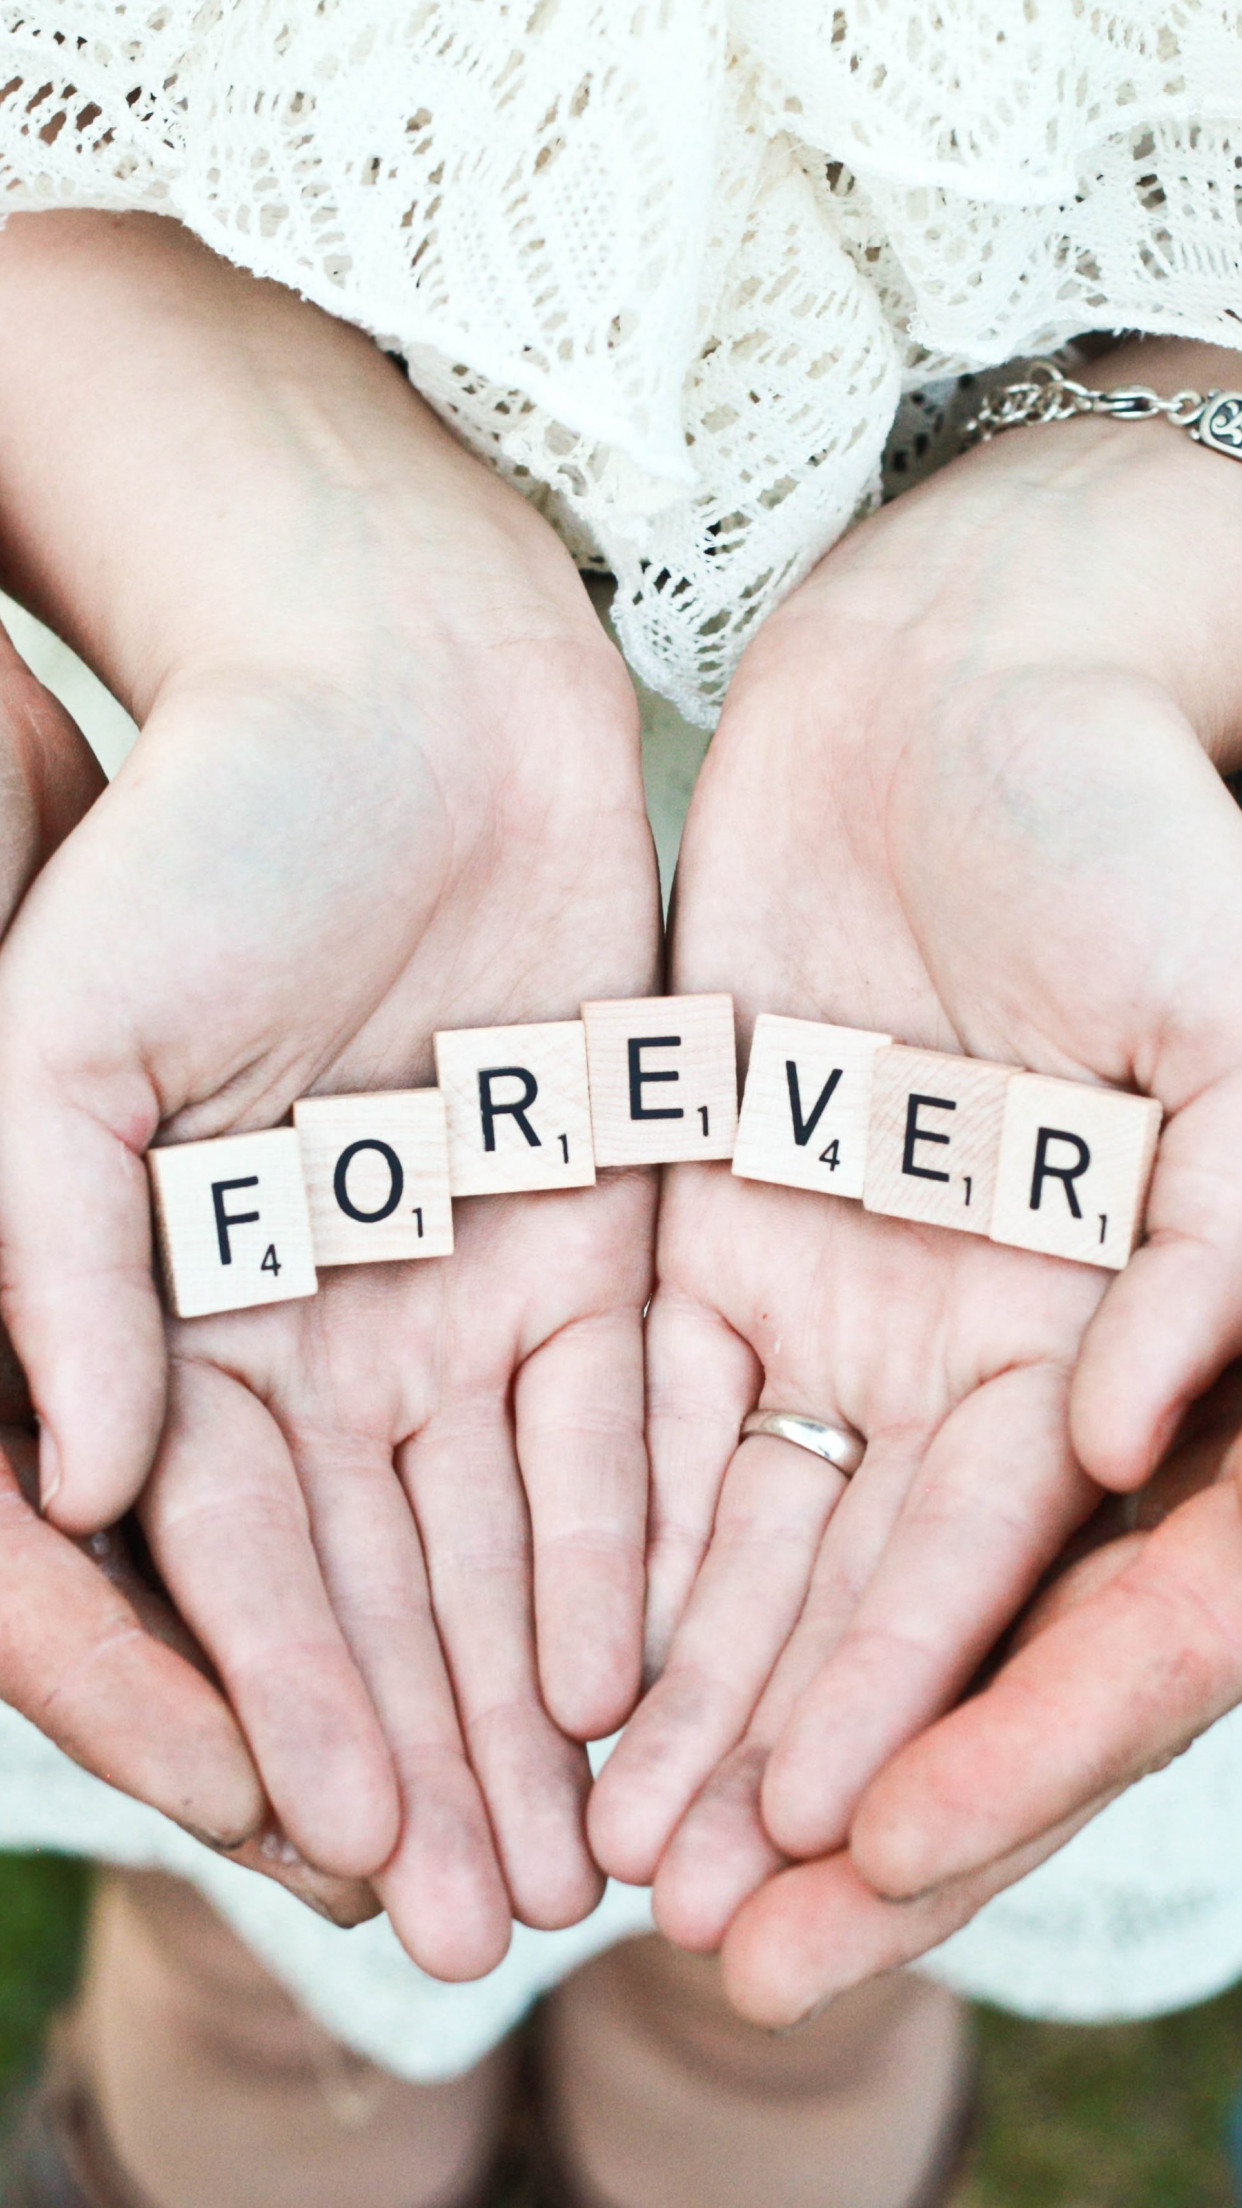 Forever message in their hands | 1242x2208 wallpaper